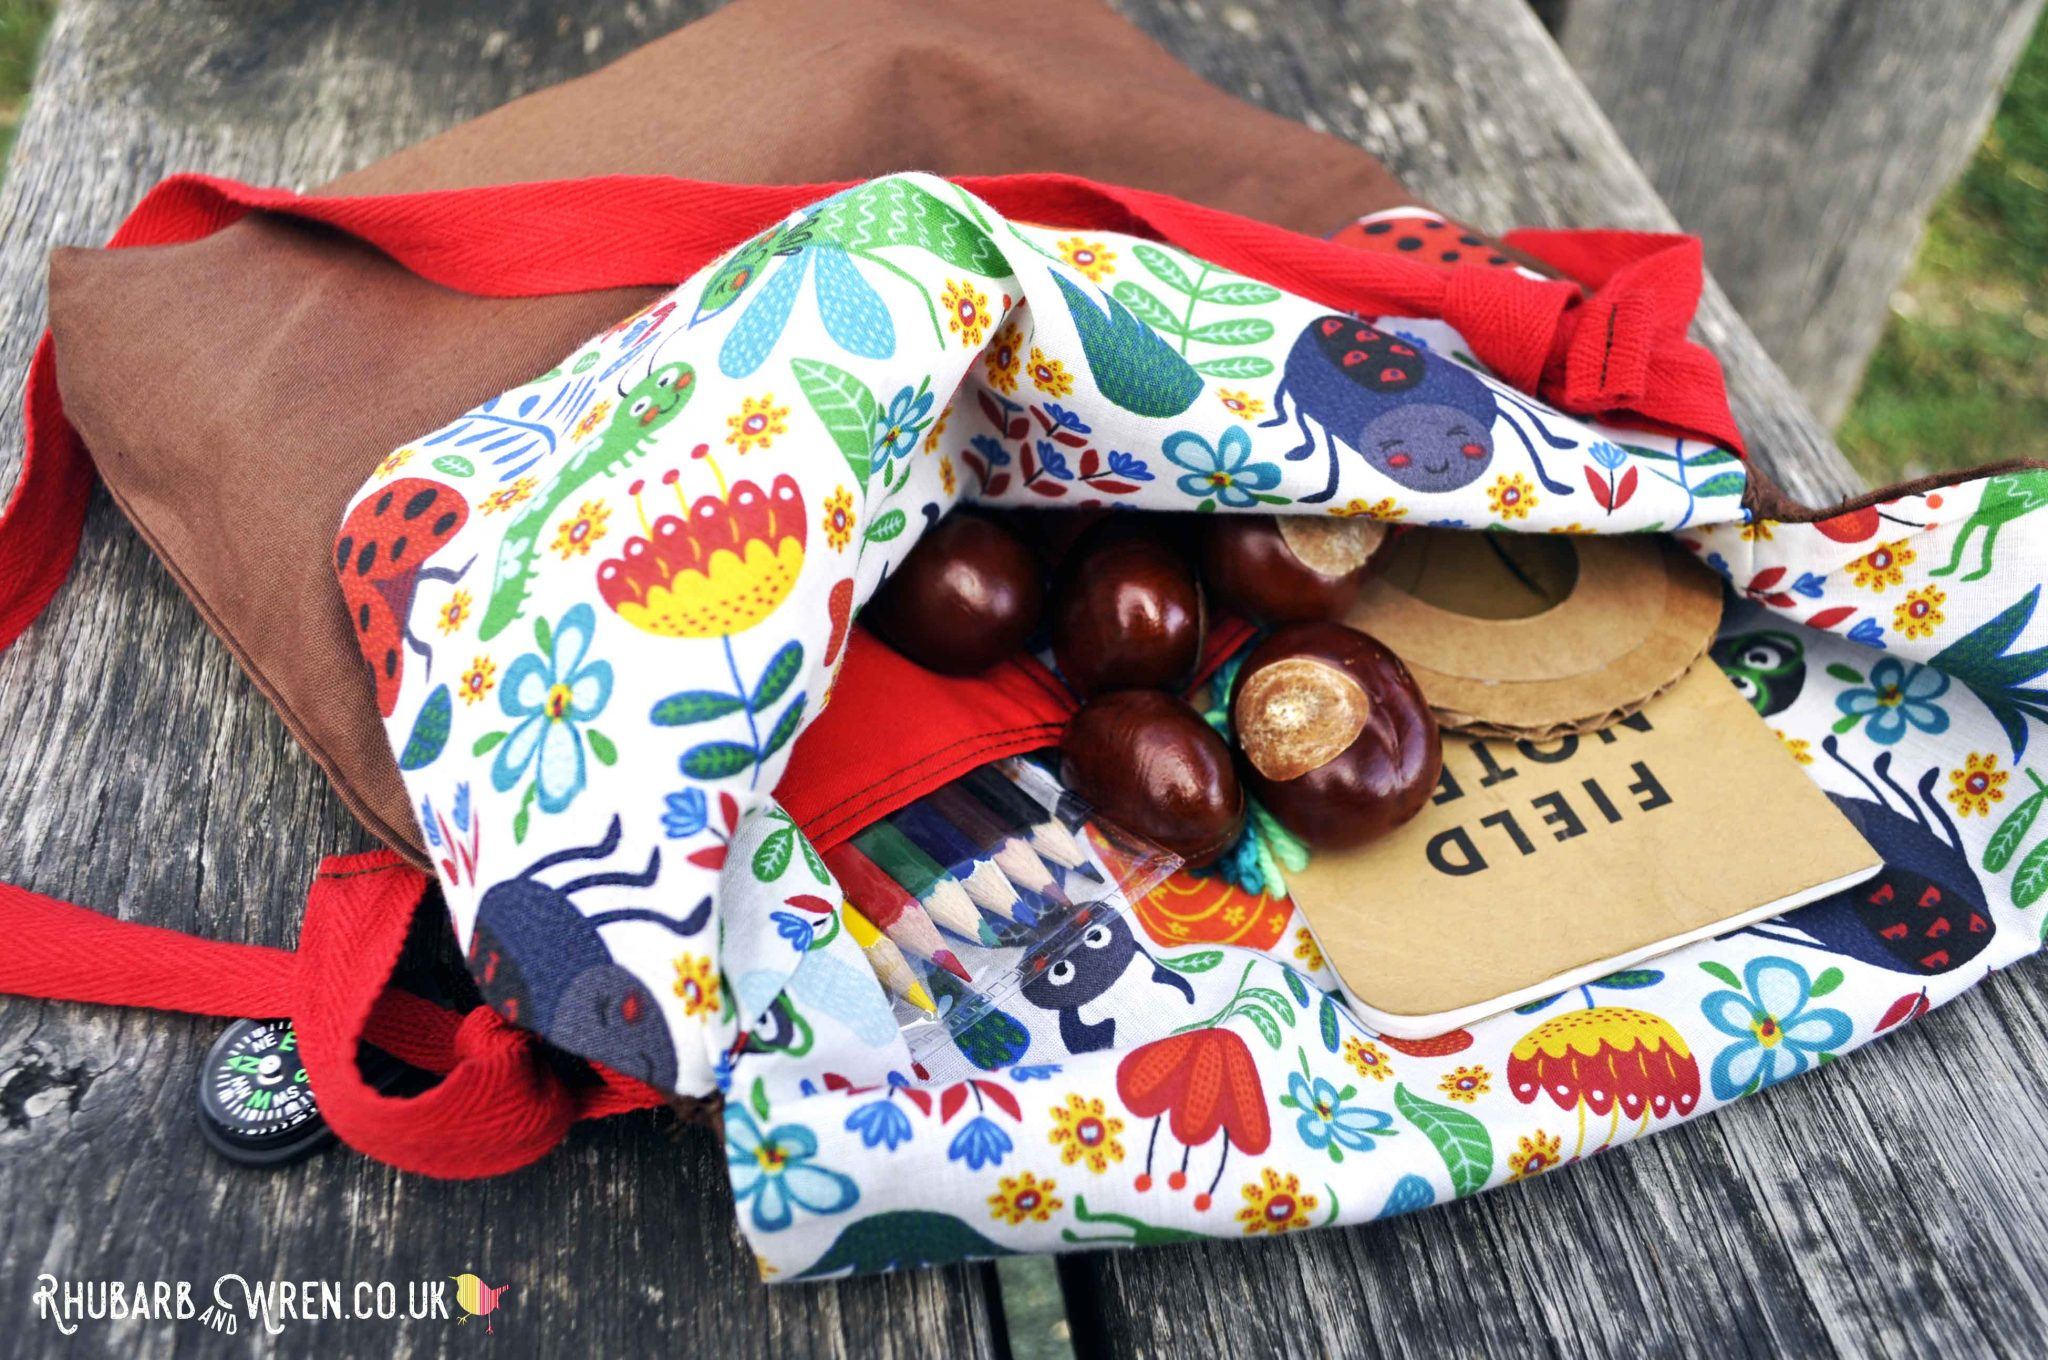 A nature explorer bag for kids - DIY sewing project